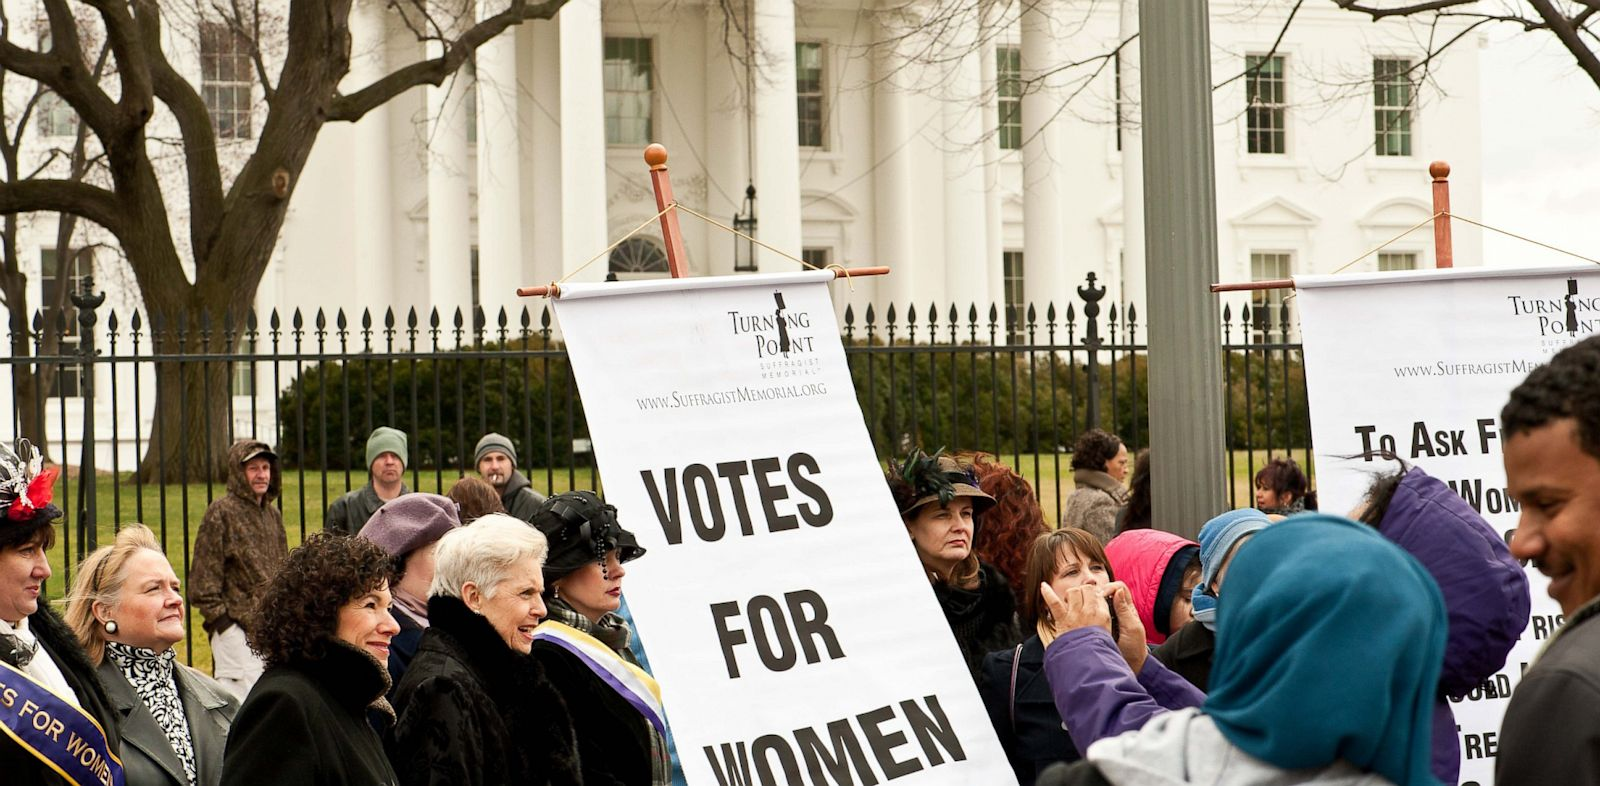 PHOTO: Women hold a sign in front of the White House in Washington on March 2, 2013 during an event to commemorate the 100th anniversary of the Suffrage March.